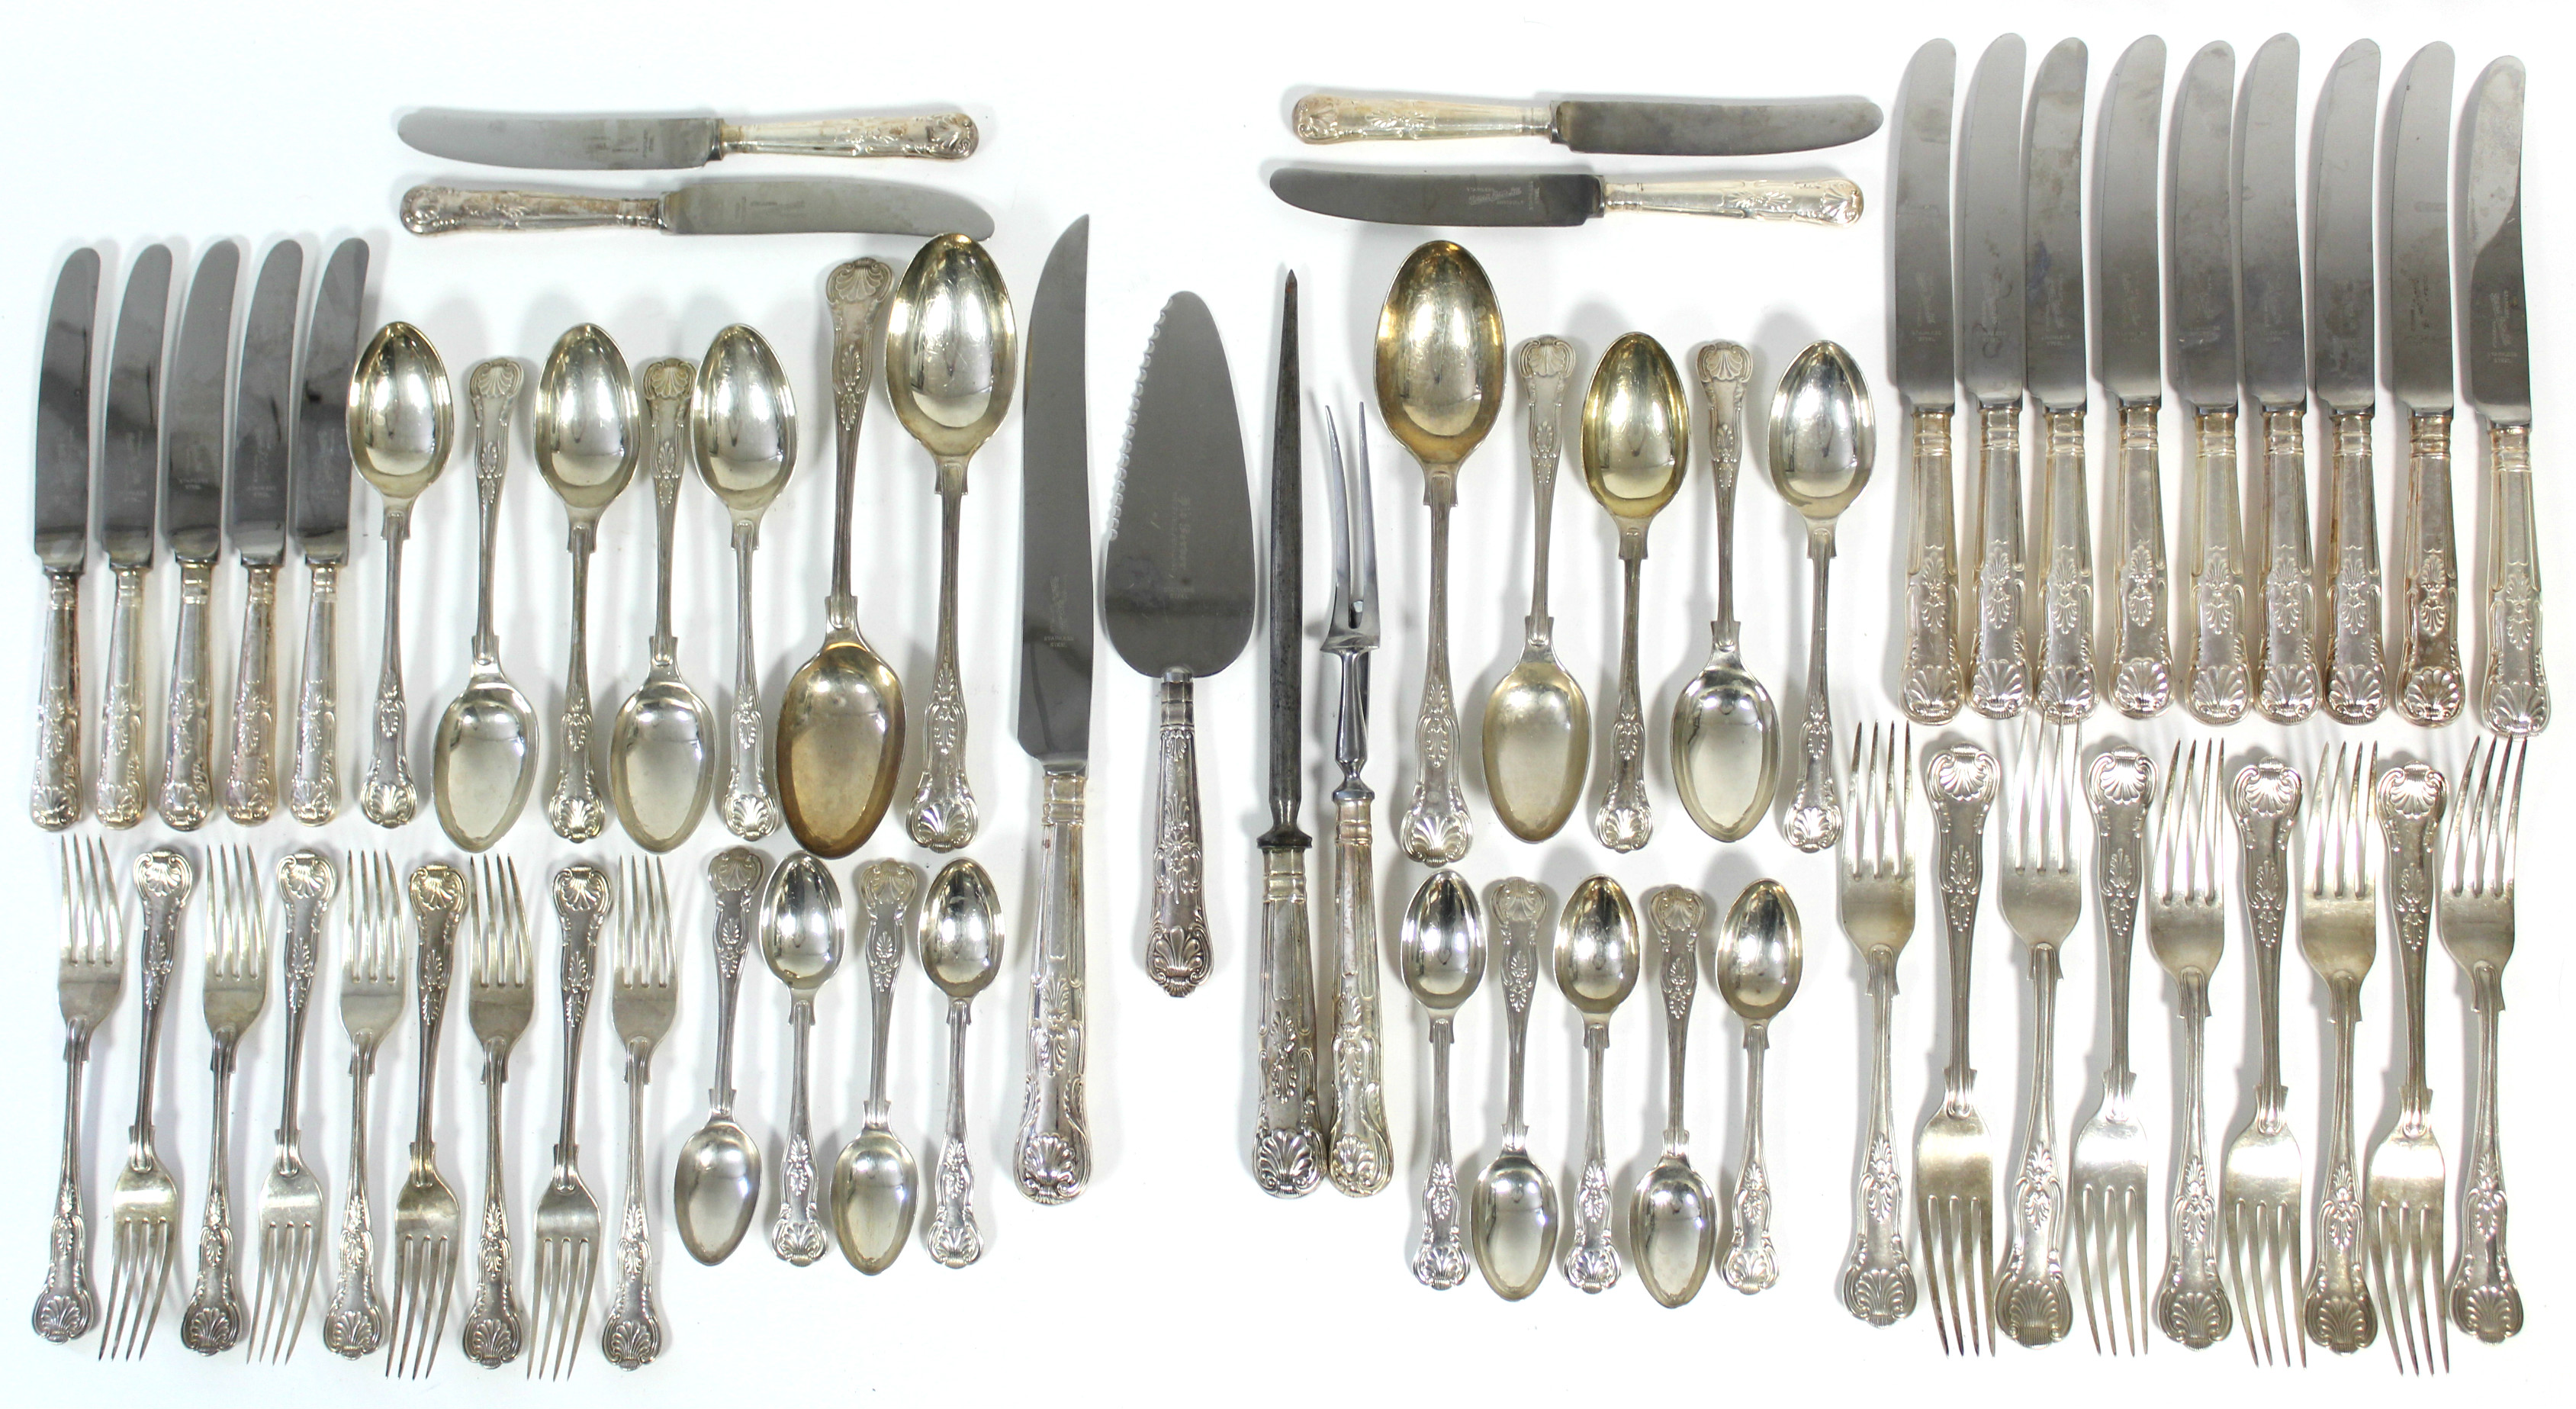 Lot 36 - A GEORGE V SILVER PART SERVICE OF KING'S PATTERN FLATWARE, comprising: three table spoons, nine